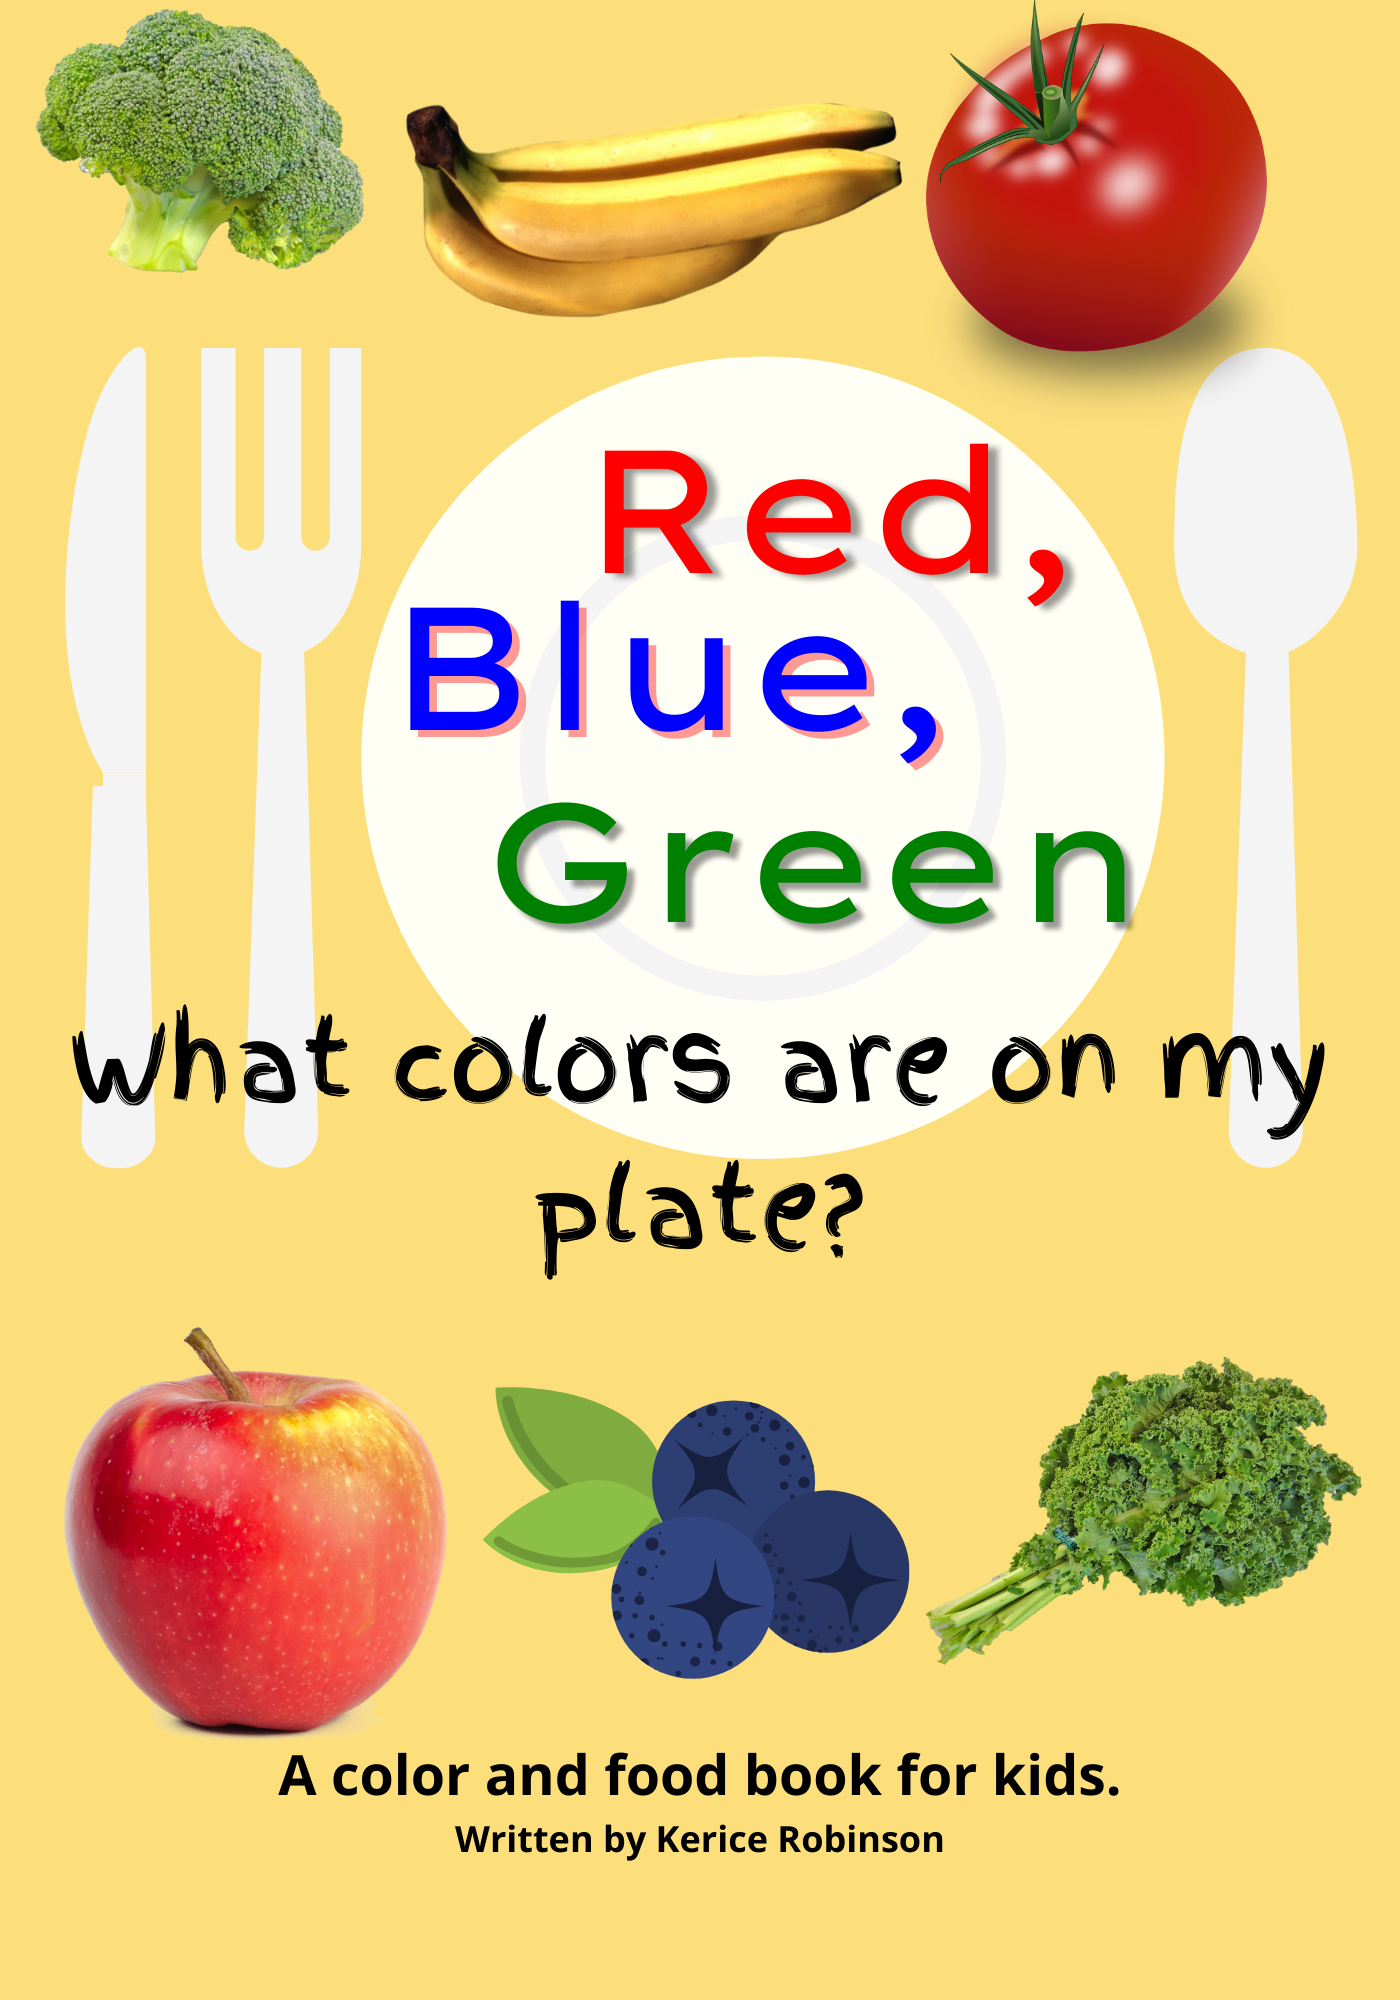 """Best color book for toddlers. k to """"1 2 3! What can I eat?"""" and """"ABC Name My Food!"""", """"Red, Blue, and Green! What colors are on my plate?"""" is a food-themed book for young readers."""